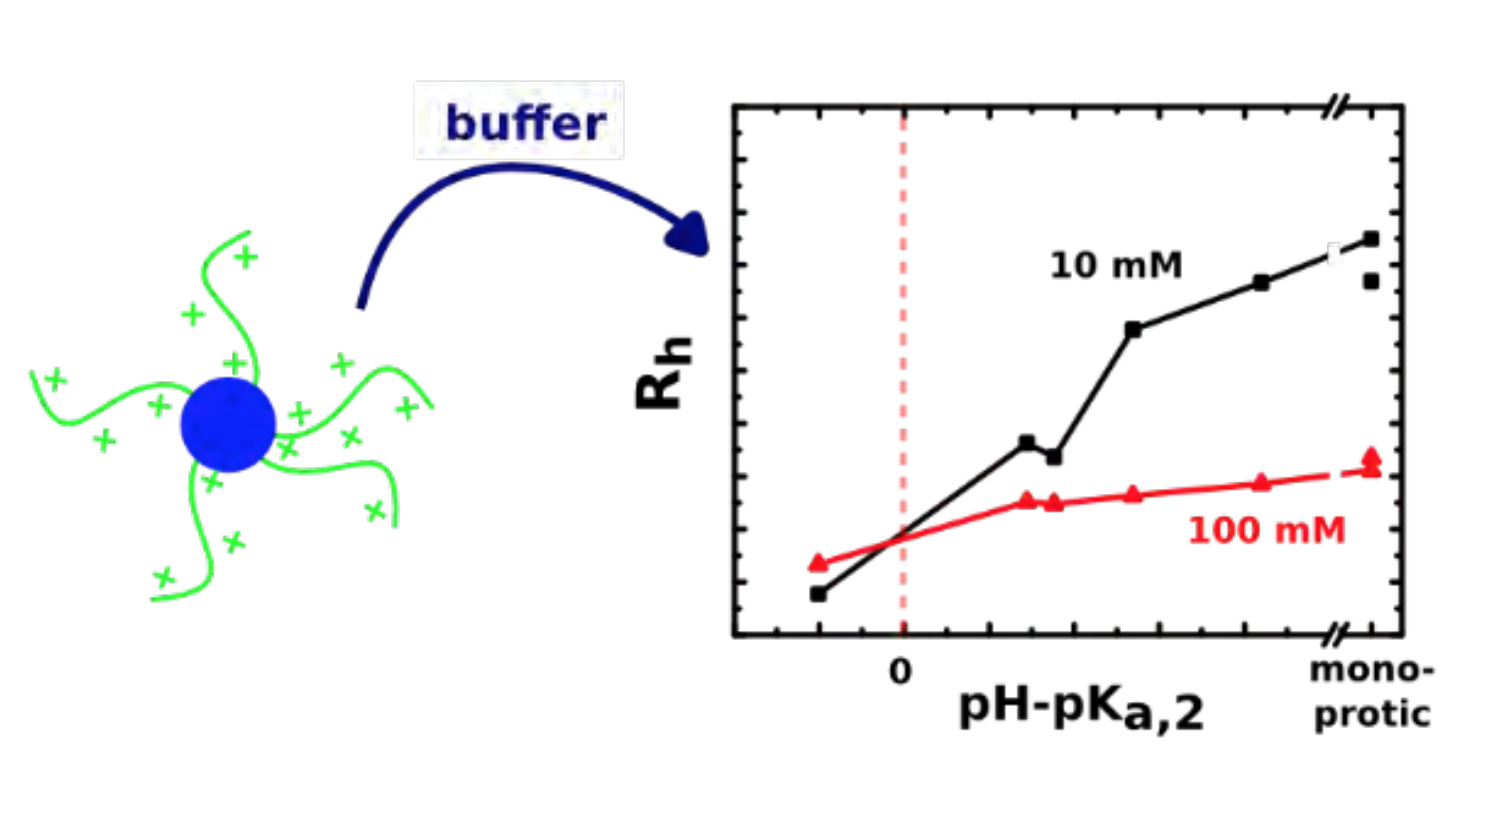 Polyprotic Buffers Affect Polyelectrolyte Micelles